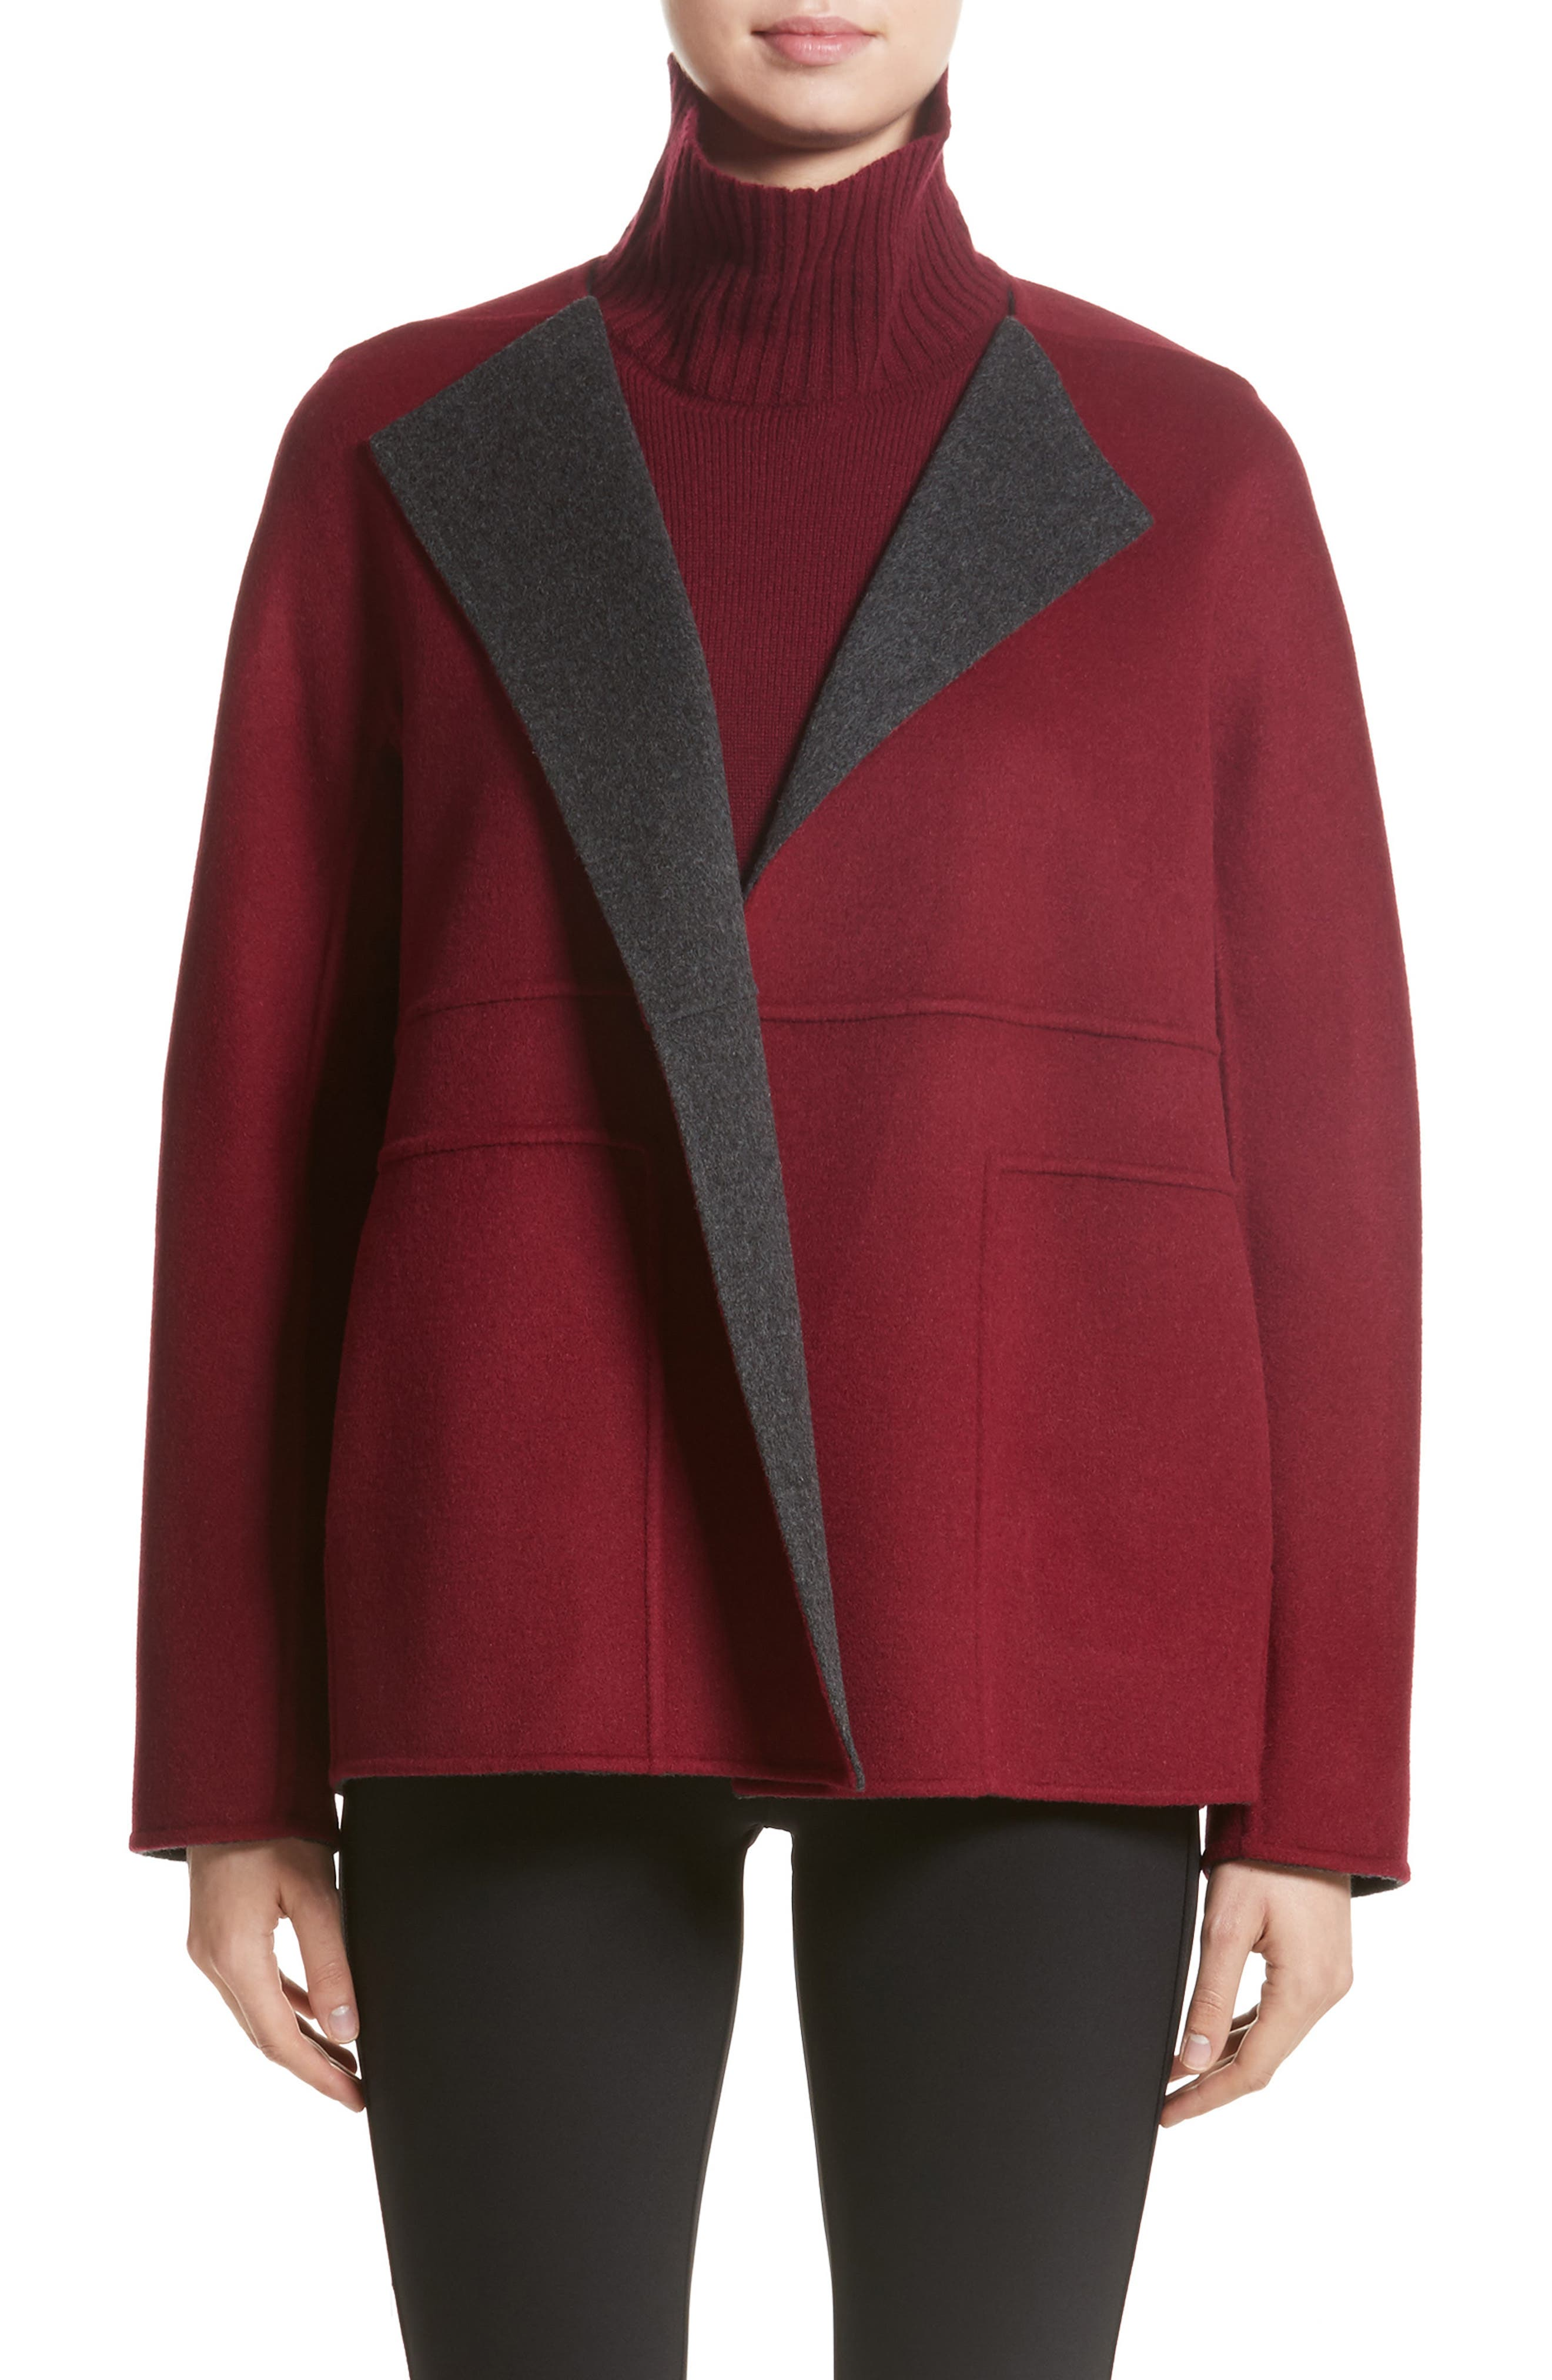 Main Image - Lafayette 148 New York Two-Tone Double Face Reversible Jacket (Nordstrom Exclusive)